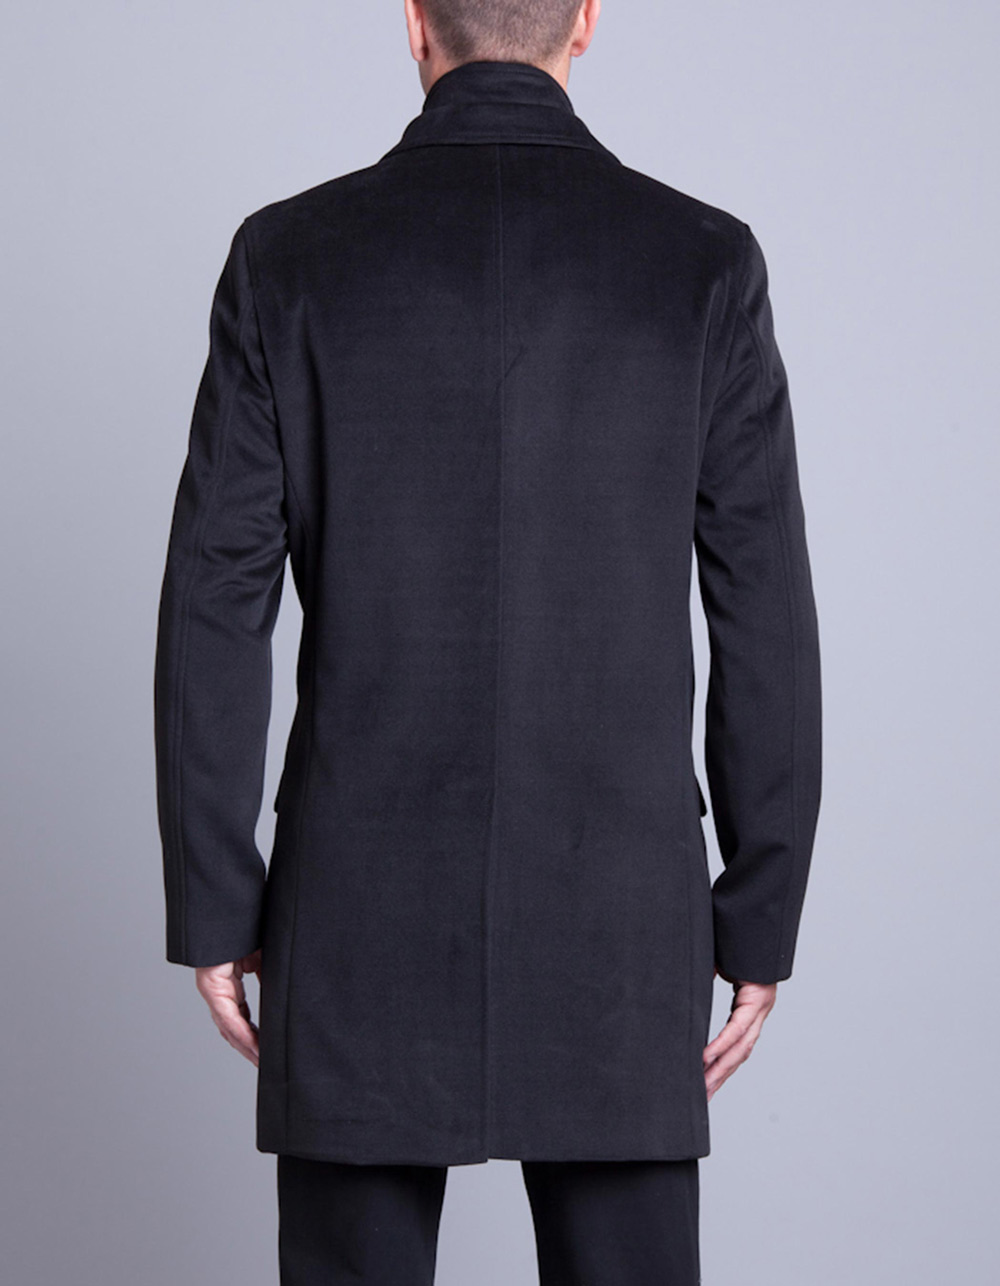 Black coat - Backside